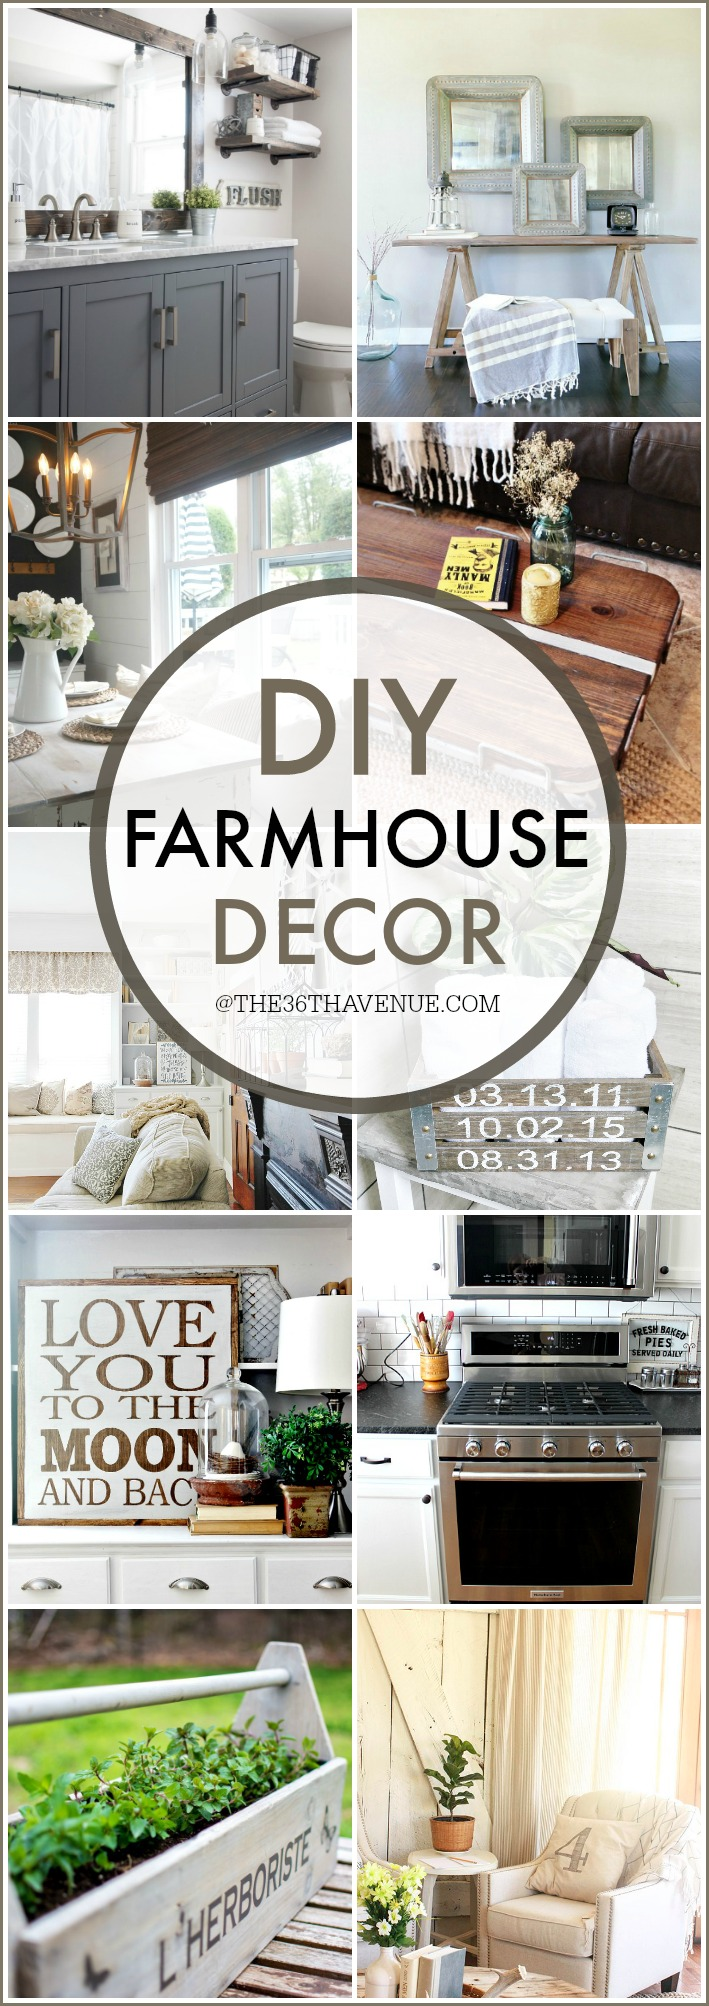 FARMHOUSE DECOR THE36THAVENUE.COM